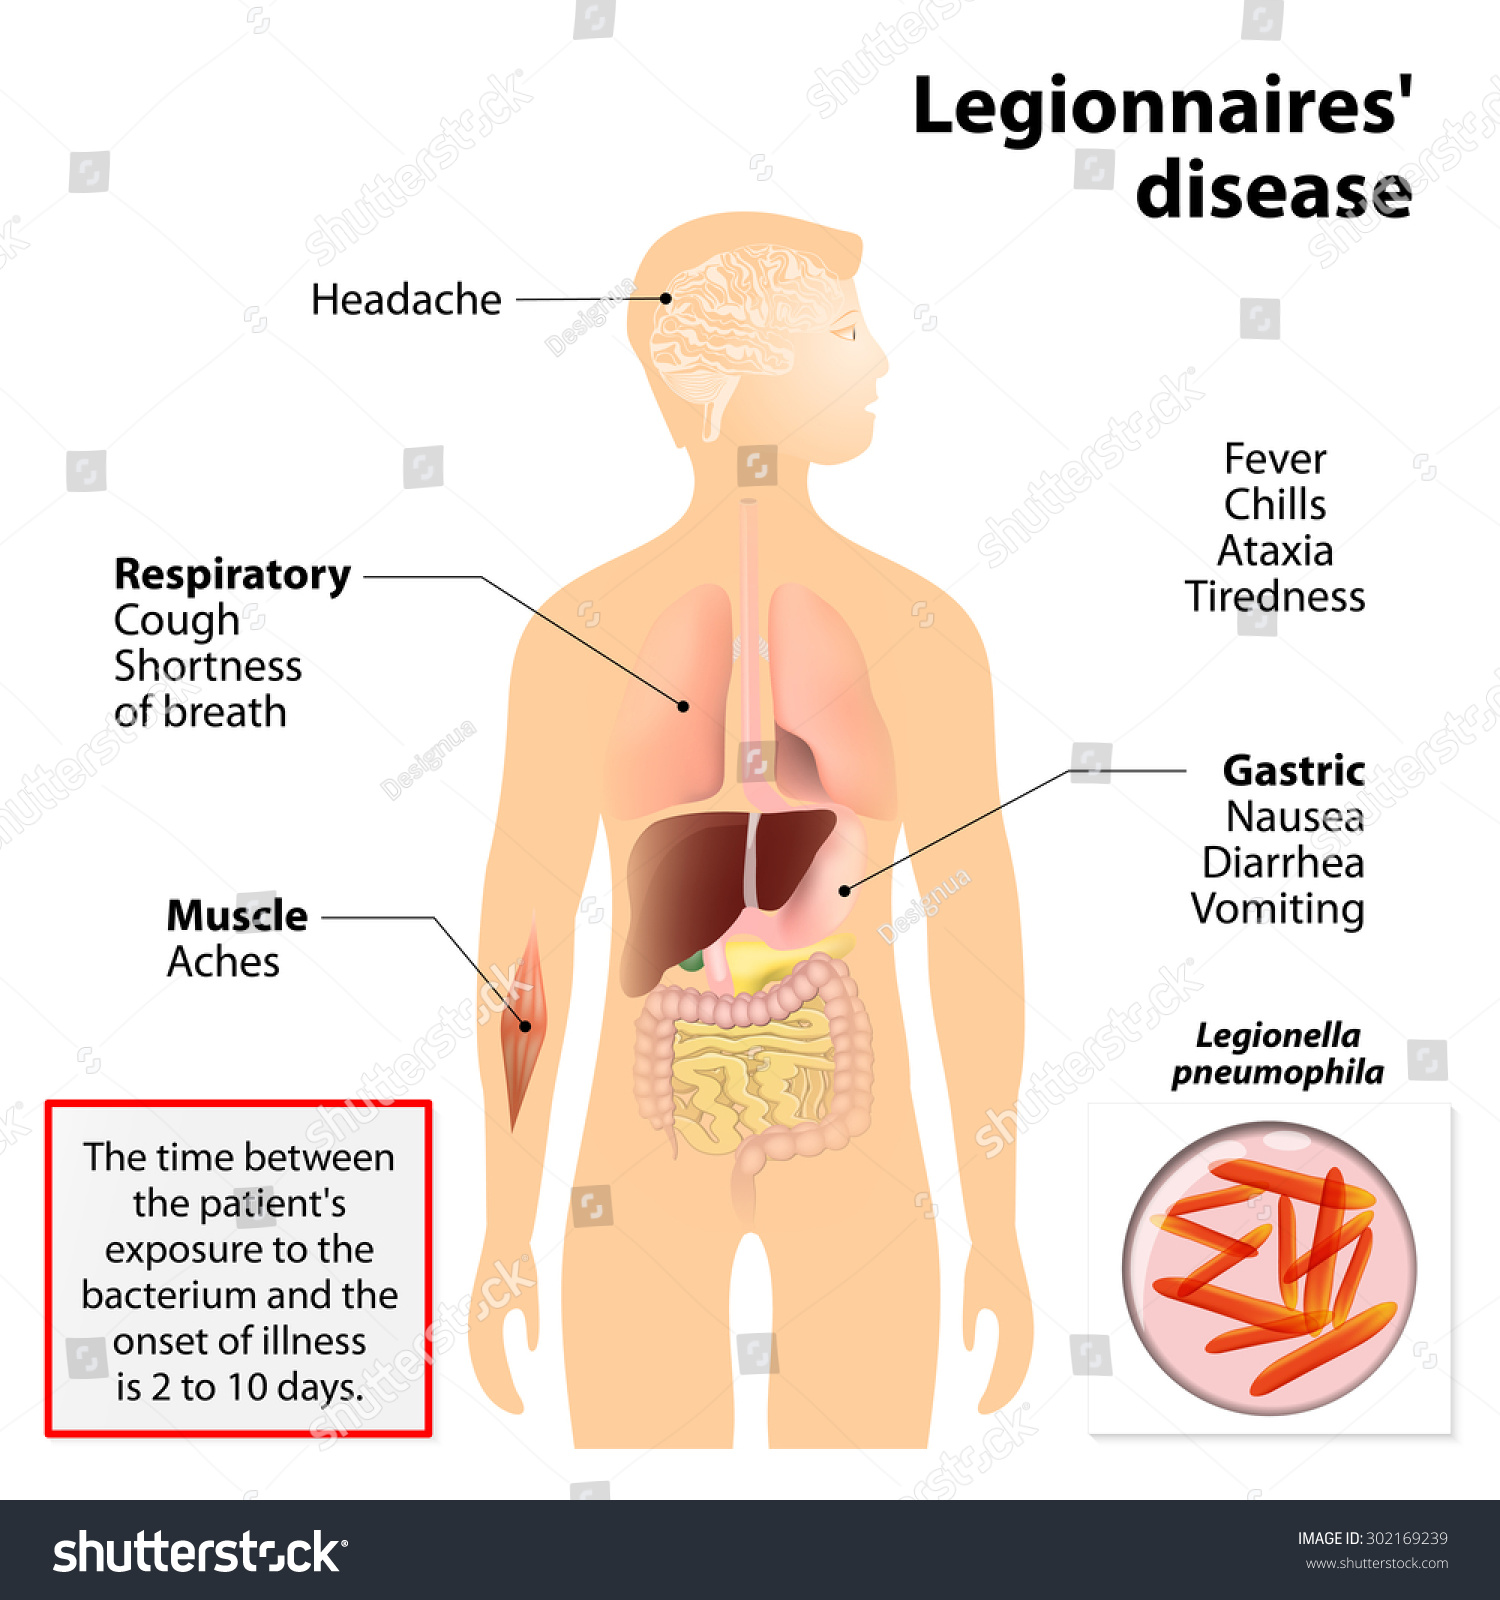 legionnaires disease legionellosis legion fever signs stock, Human Body